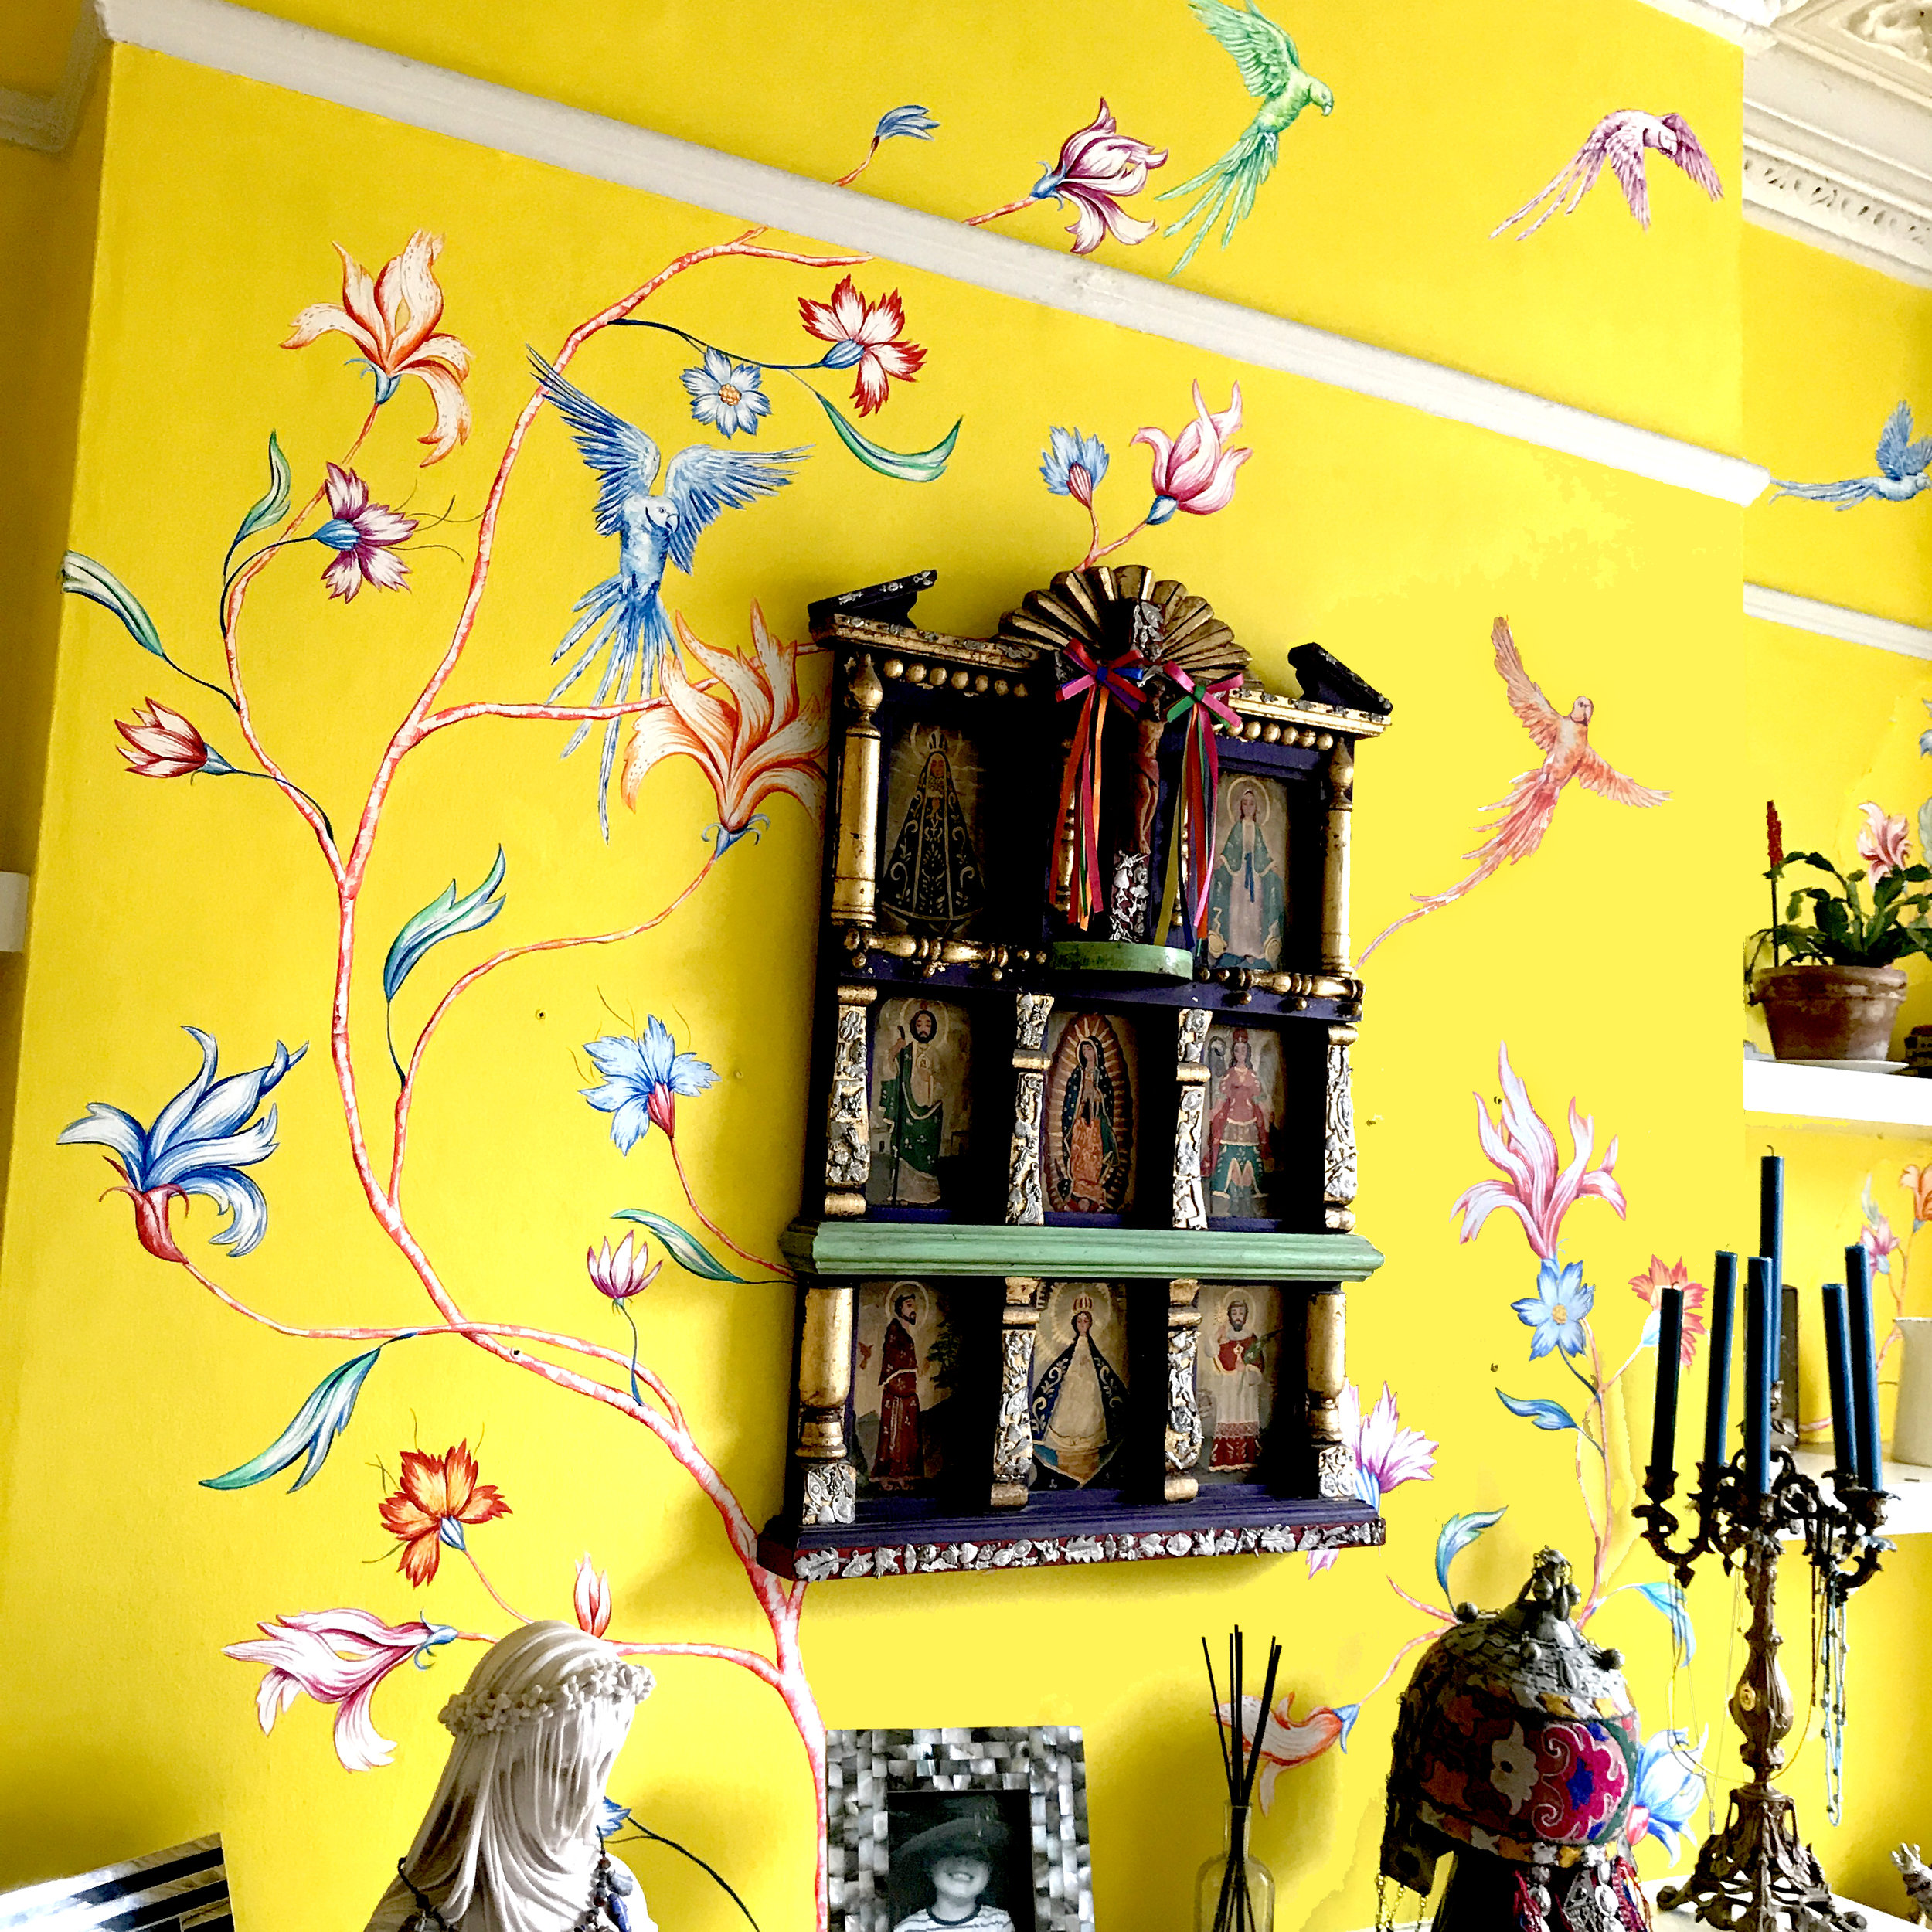 Mumbai Yellow Chinoiserie- inspired by a trip to India